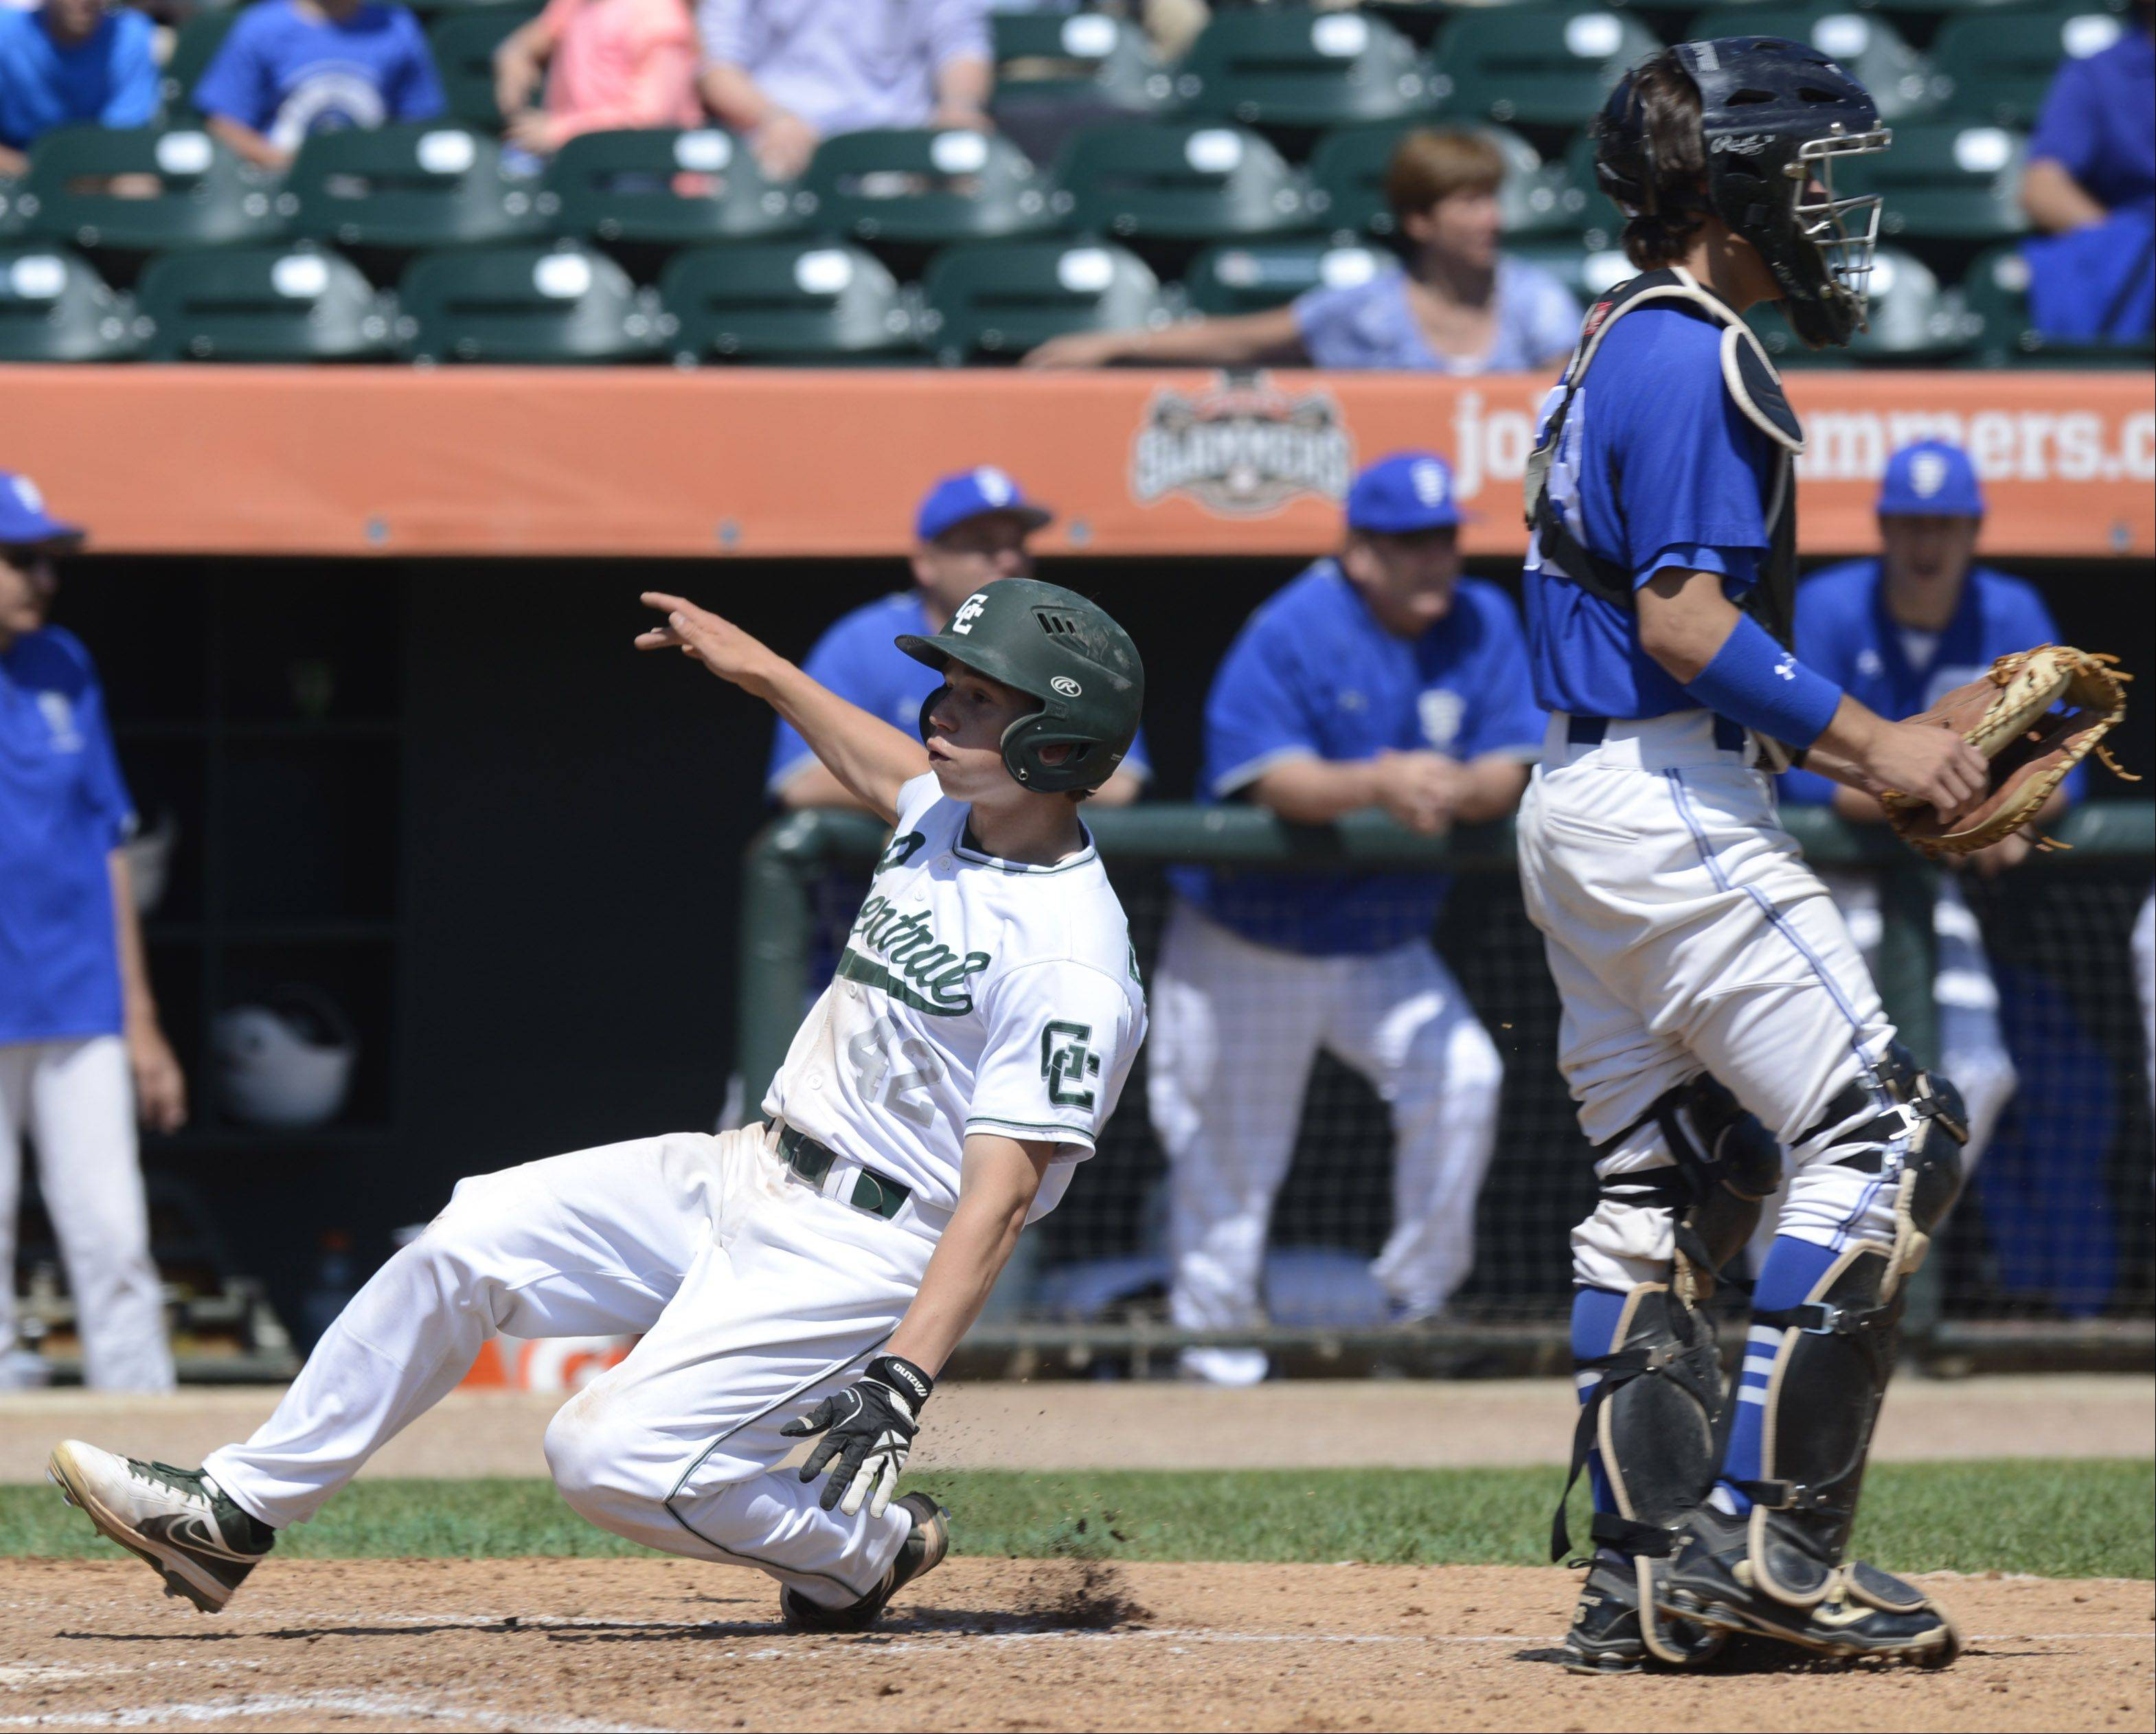 Grasylake Central's Ryan Fontana scores the Rams' first run of the game without a play by St. Francis catcher Brett Jungles during the Class 3A state baseball tournament at Silver Cross Field in Joliet on Friday.